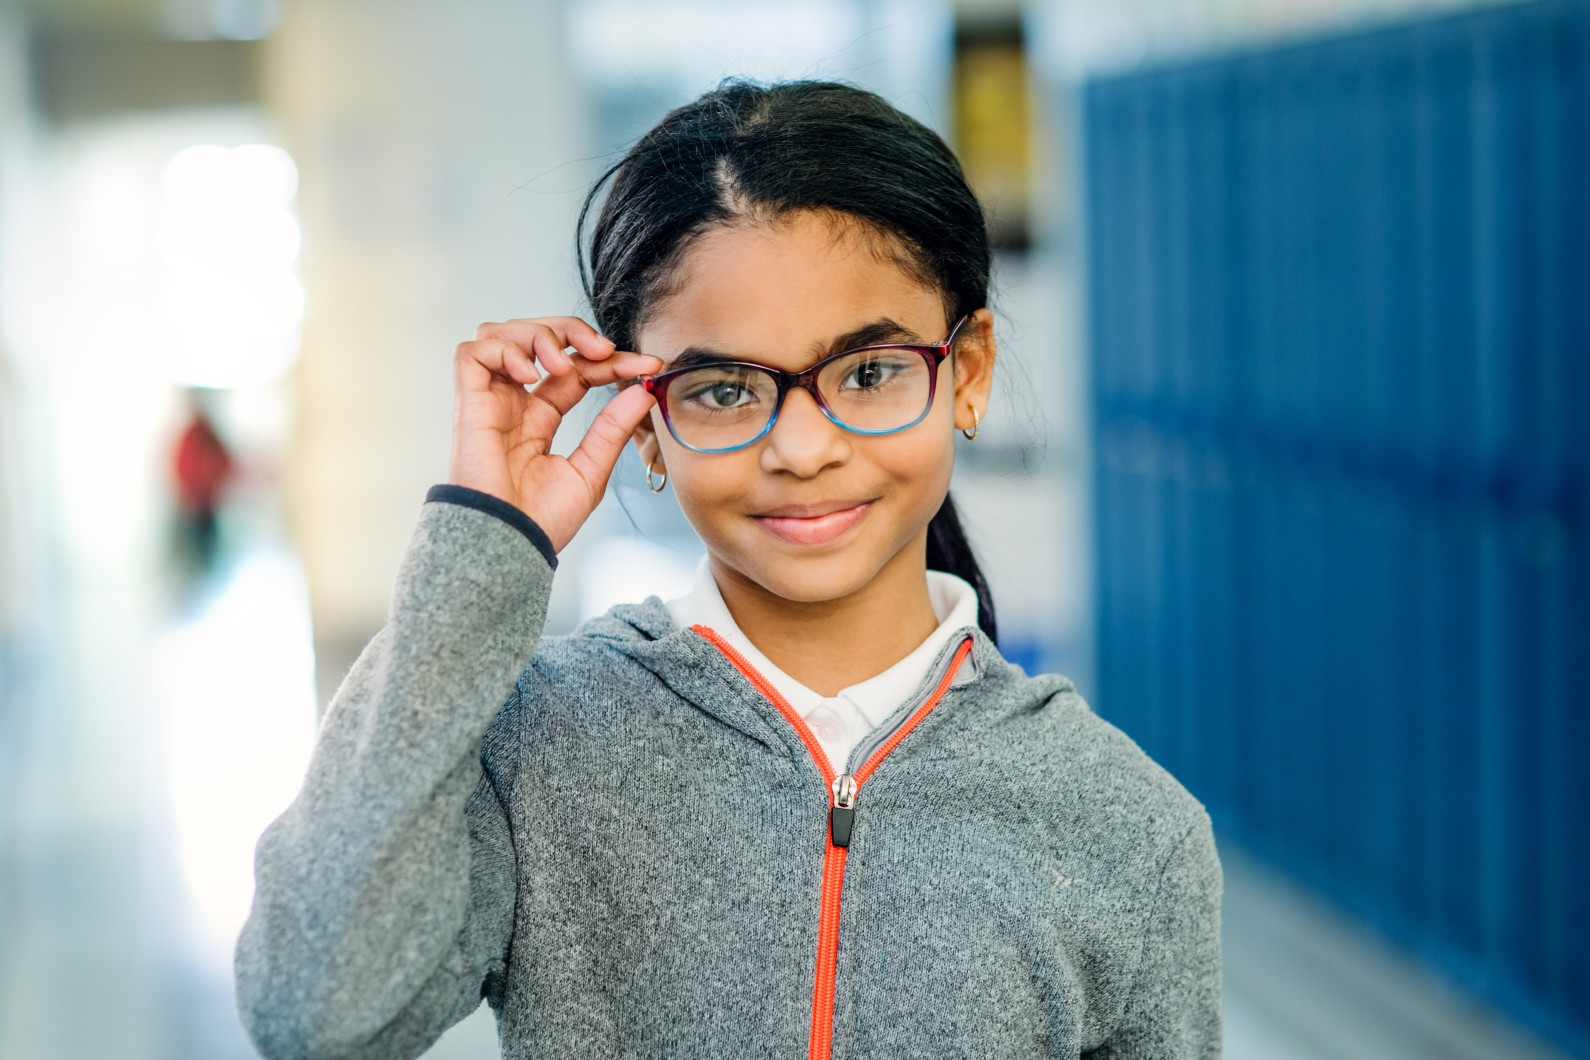 A student wearing glasses